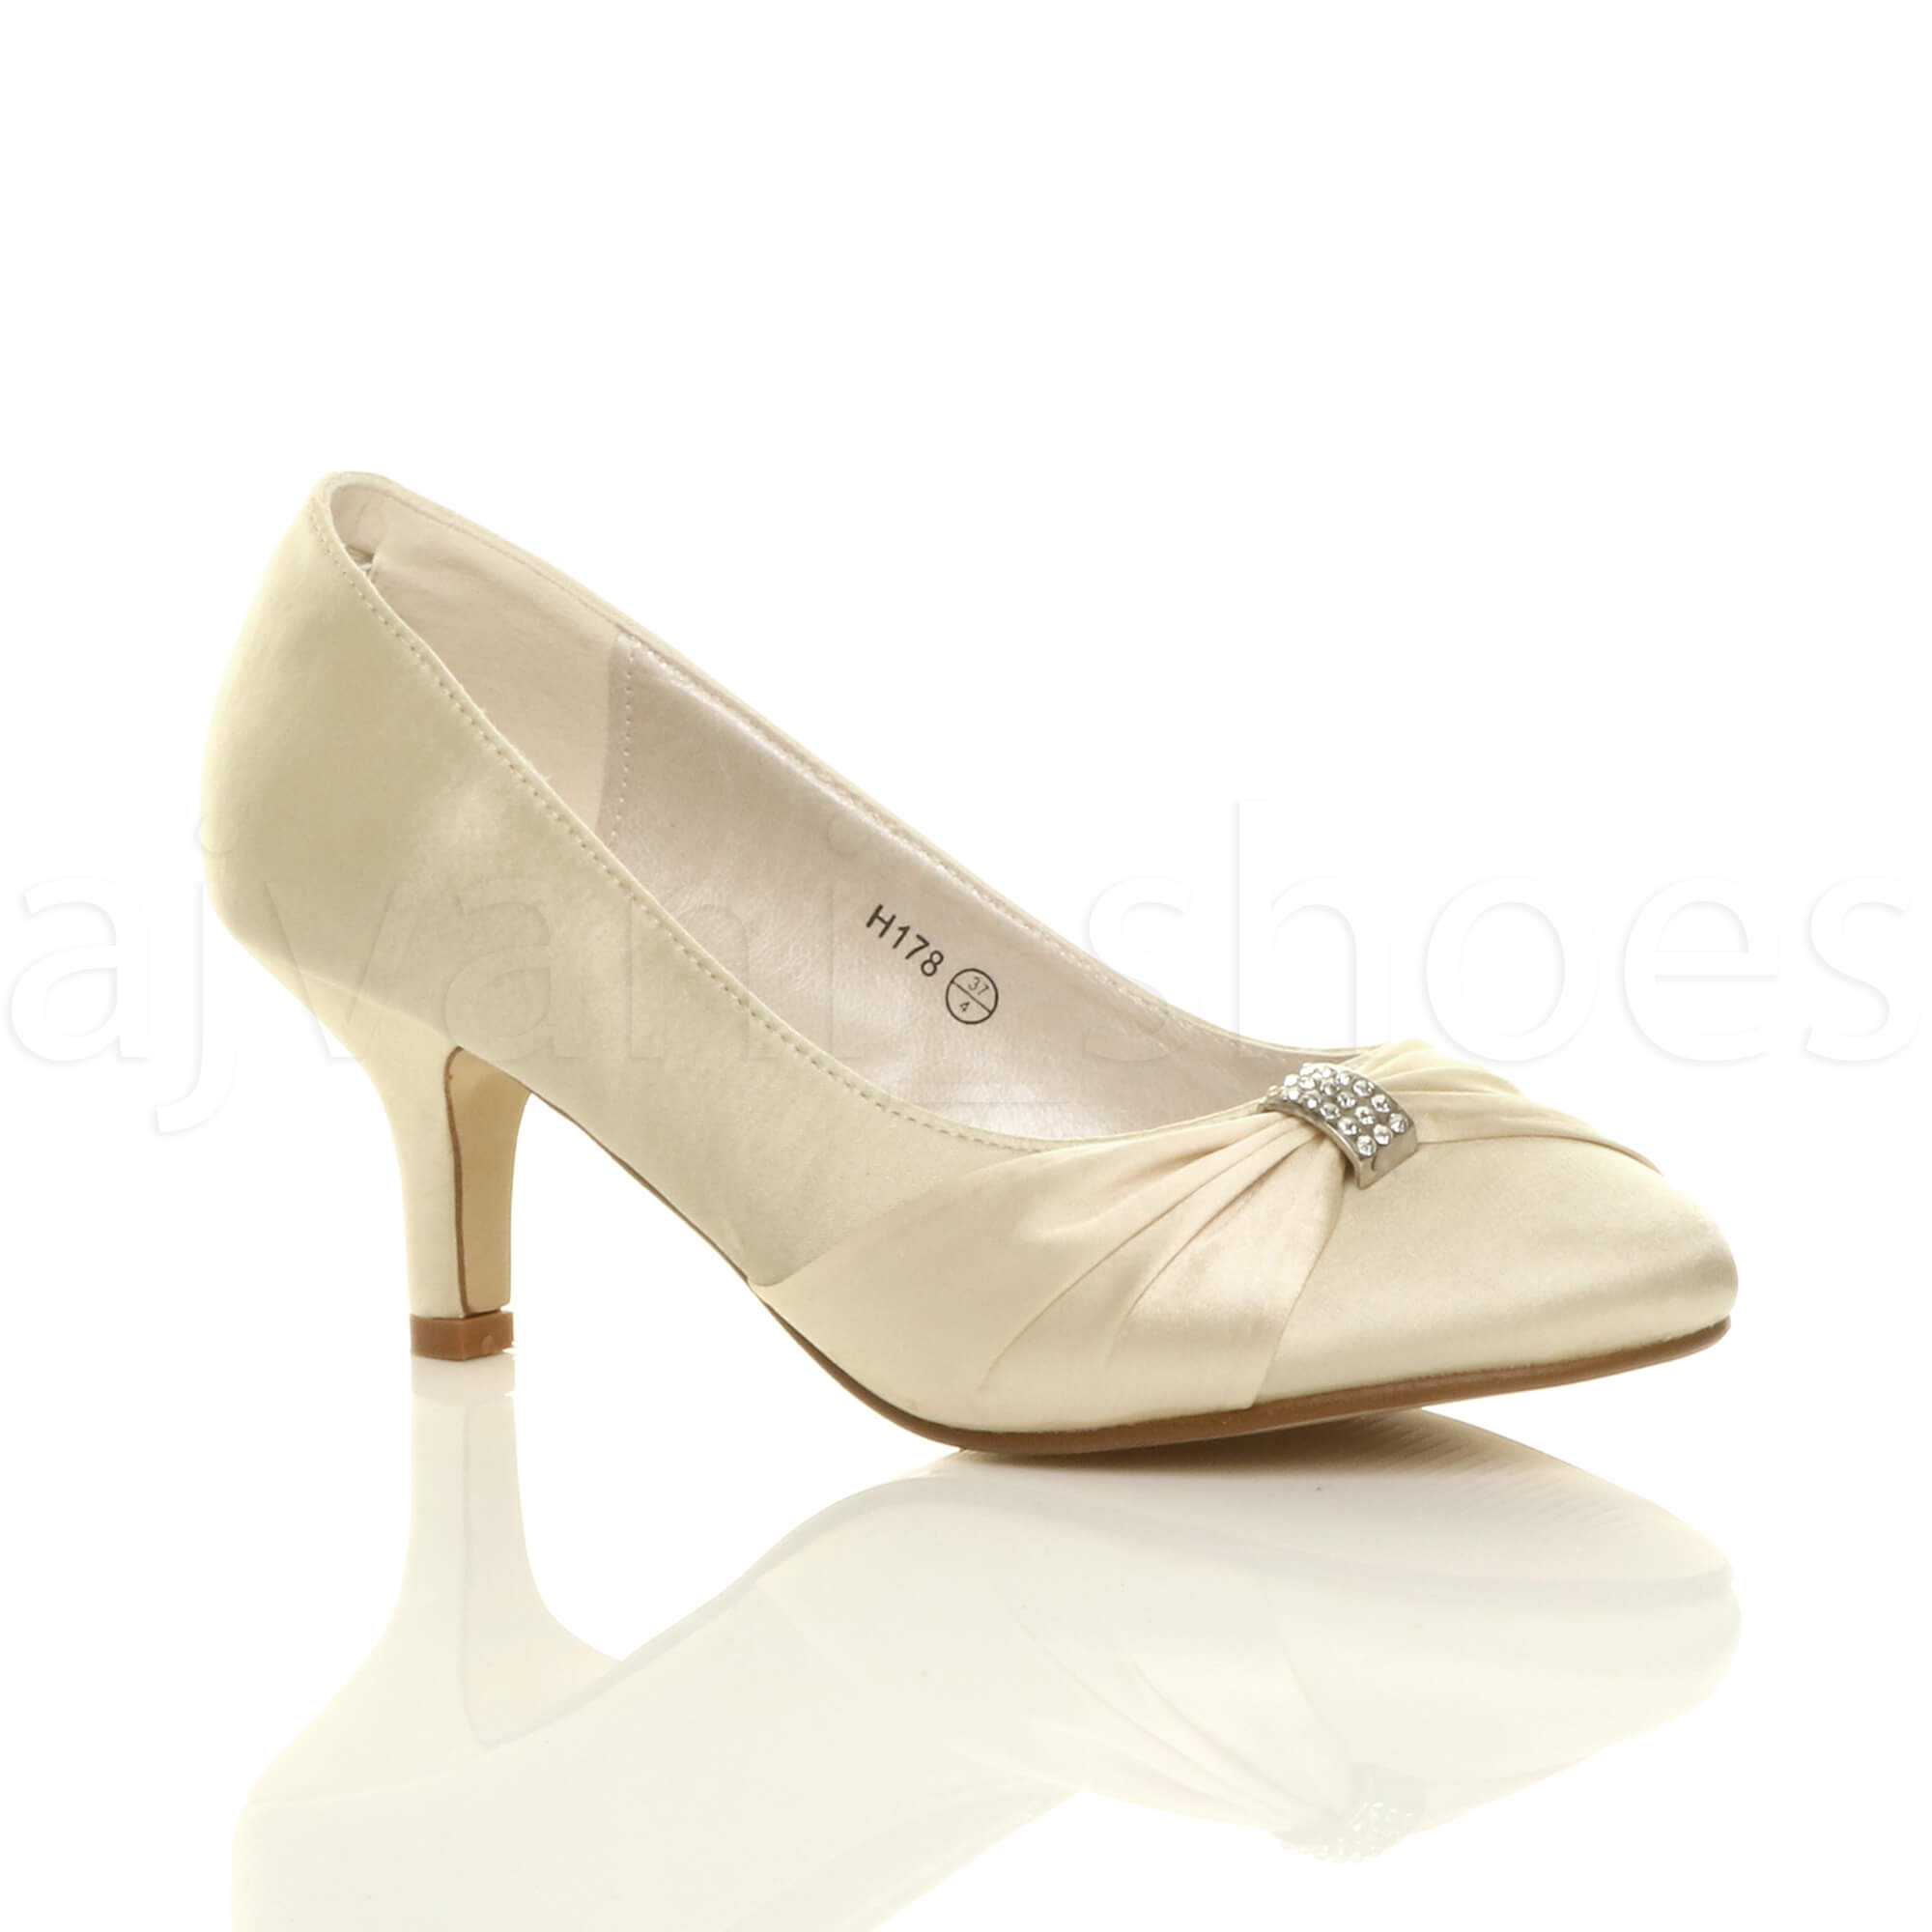 WOMENS-WEDDING-BRIDAL-LADIES-PROM-SHOES-LOW-HEEL-BRIDESMAID-EVENING-SANDALS-SIZE